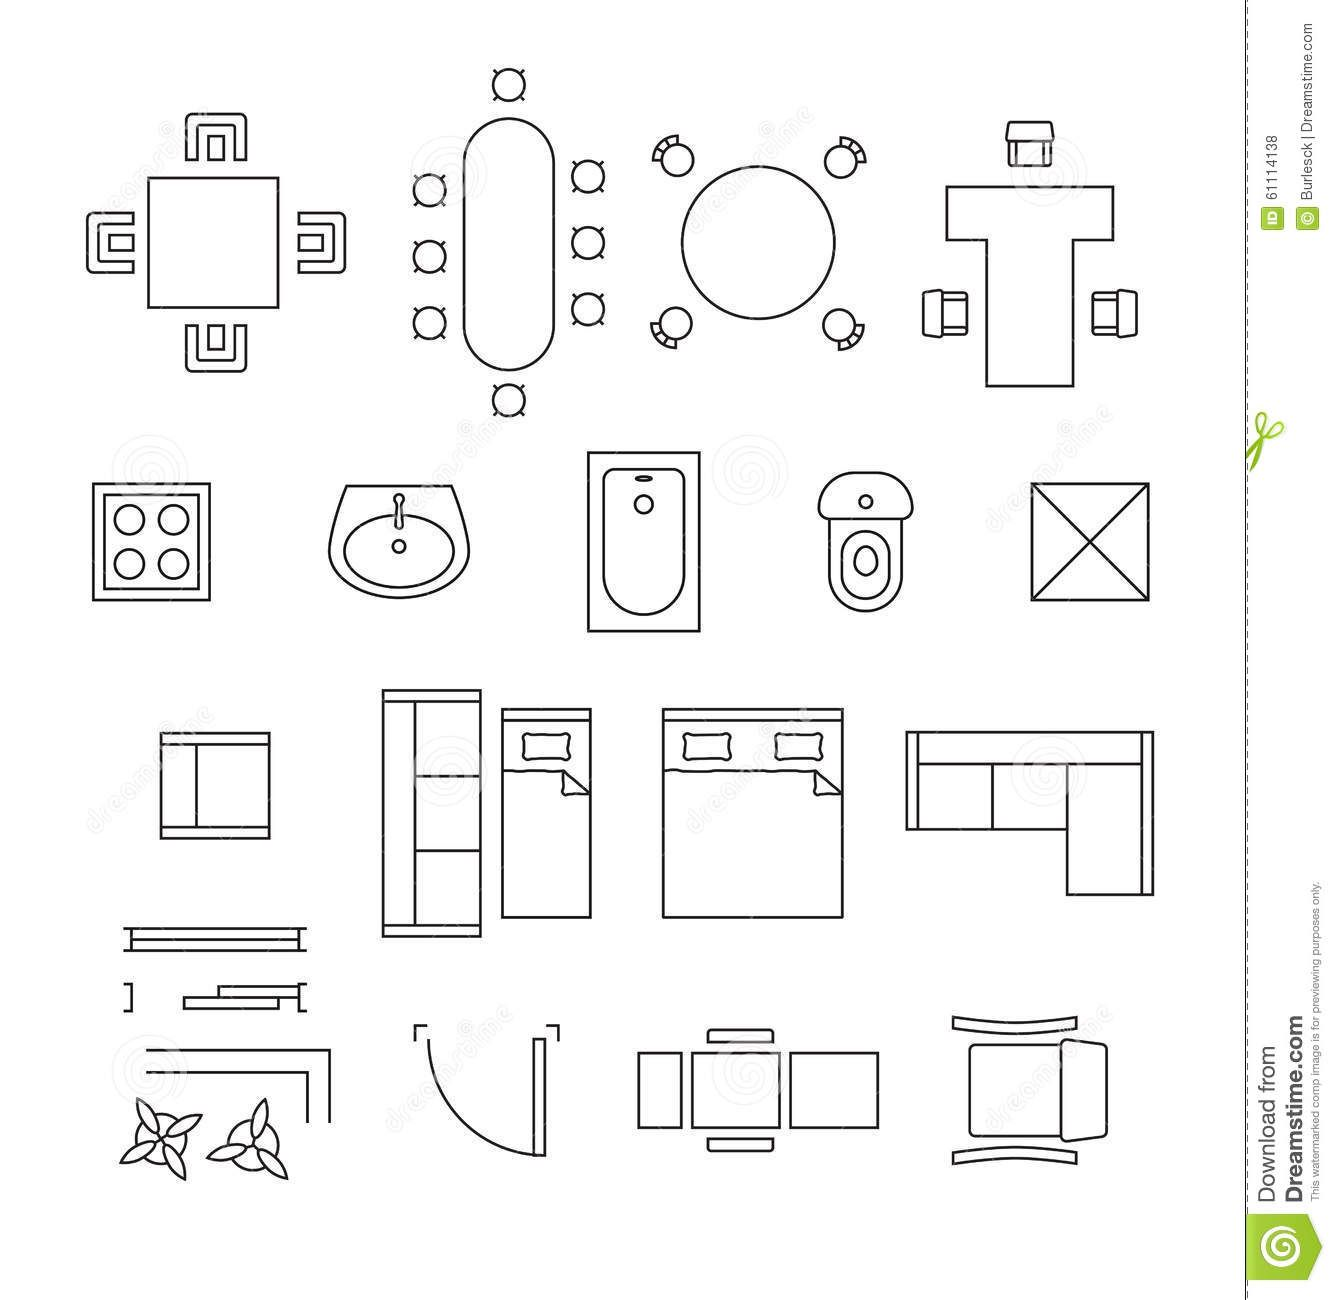 Bathroom floor plan symbols  bathroom design 20172018